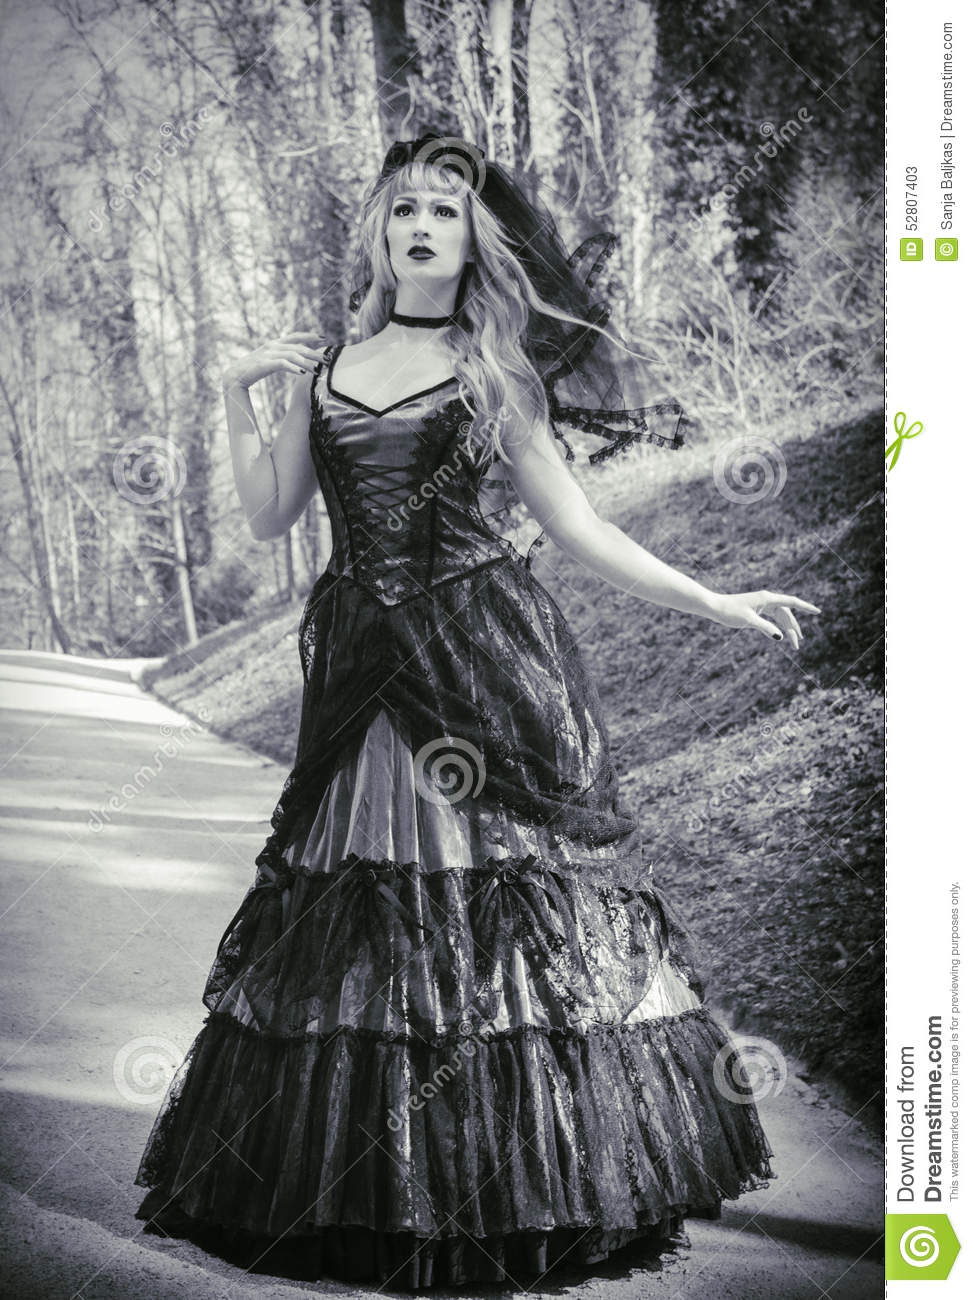 Gothic Girl Wallpaper Free Gothic Bride With Veil Stock Image Image Of Goth